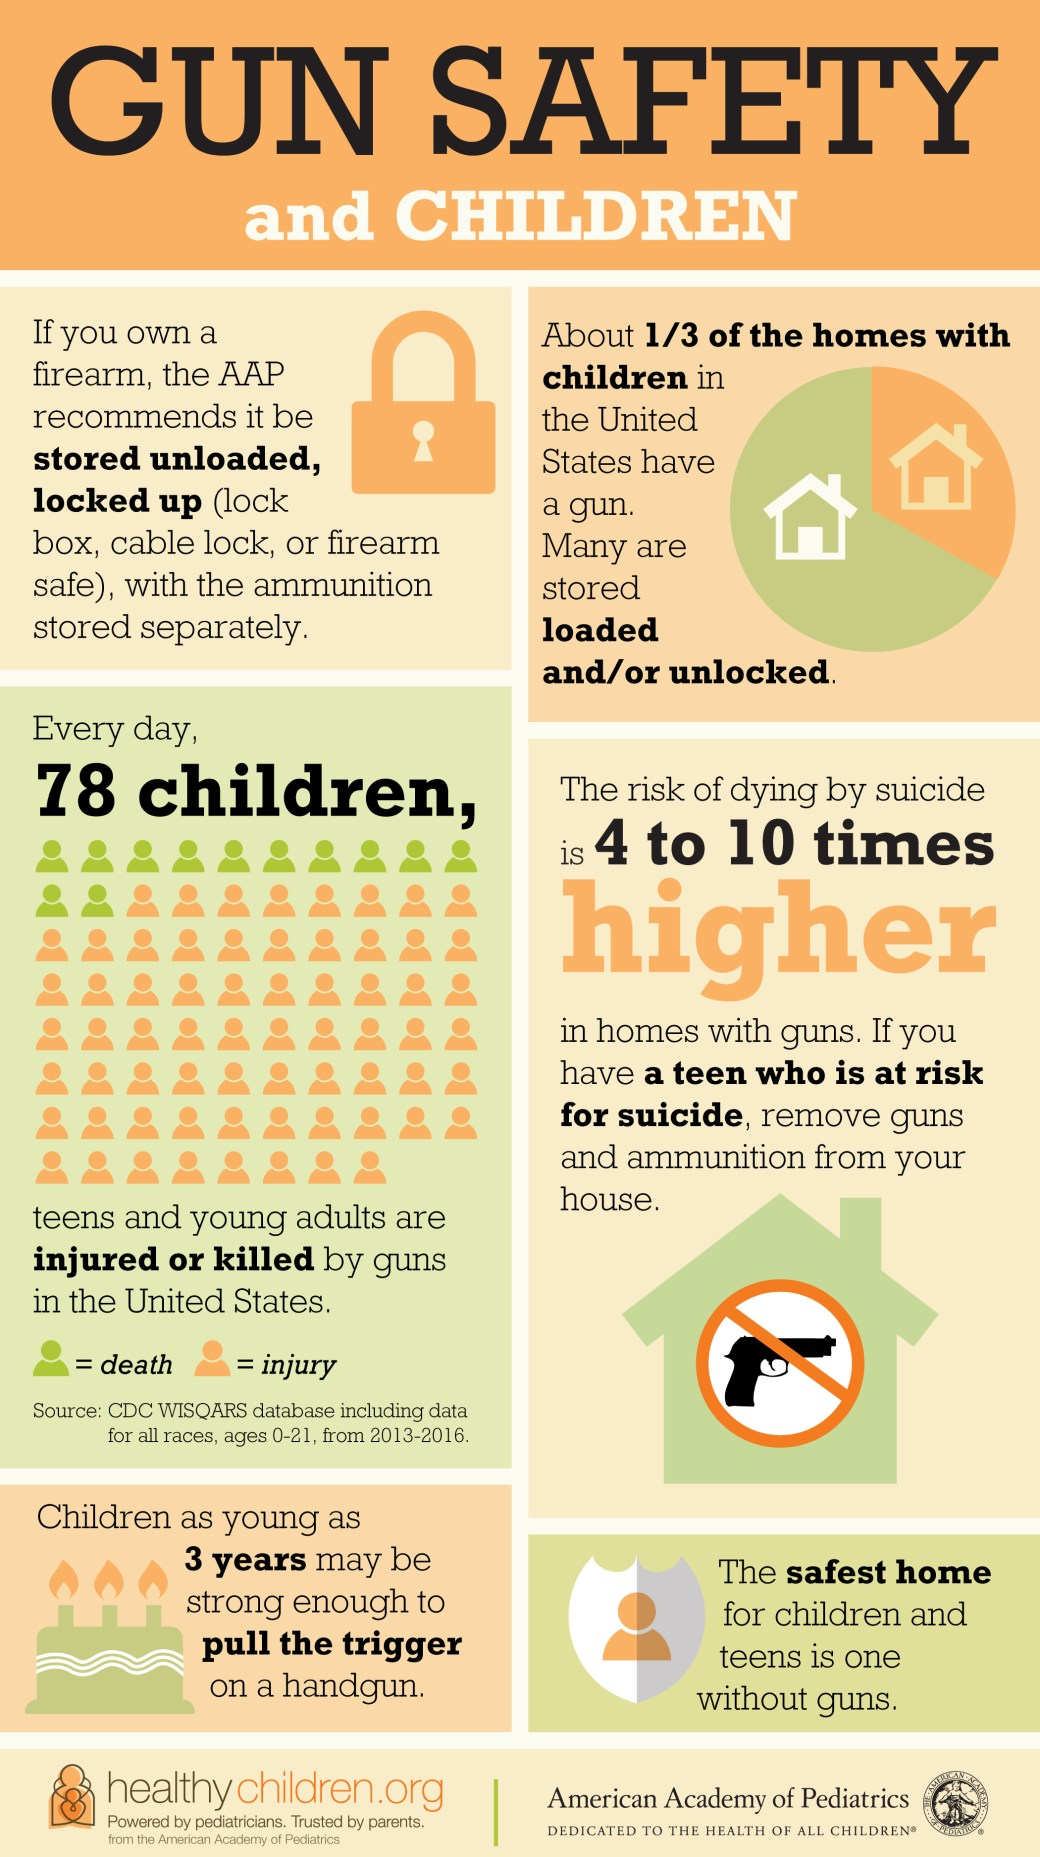 Learn more about gun safety and children in this infographic from the American Academy of Pediatrics.